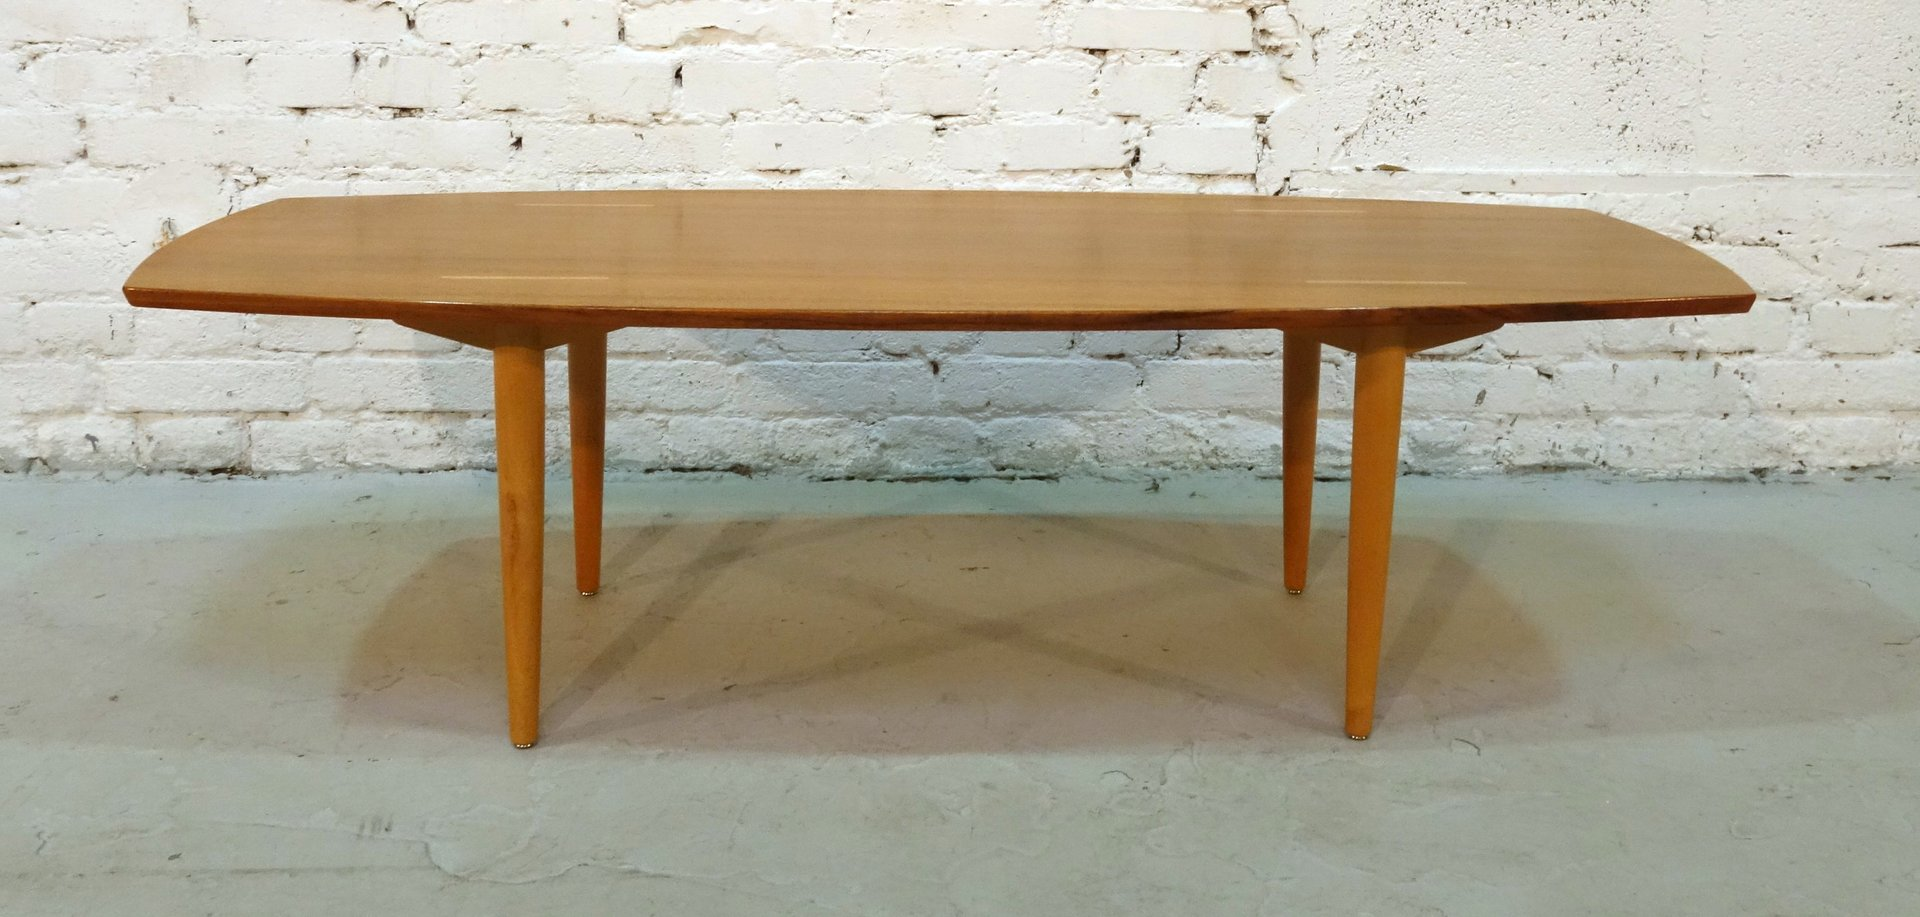 MidCentury Coffee Table by Abel Sorenson for Knoll 1948 for sale